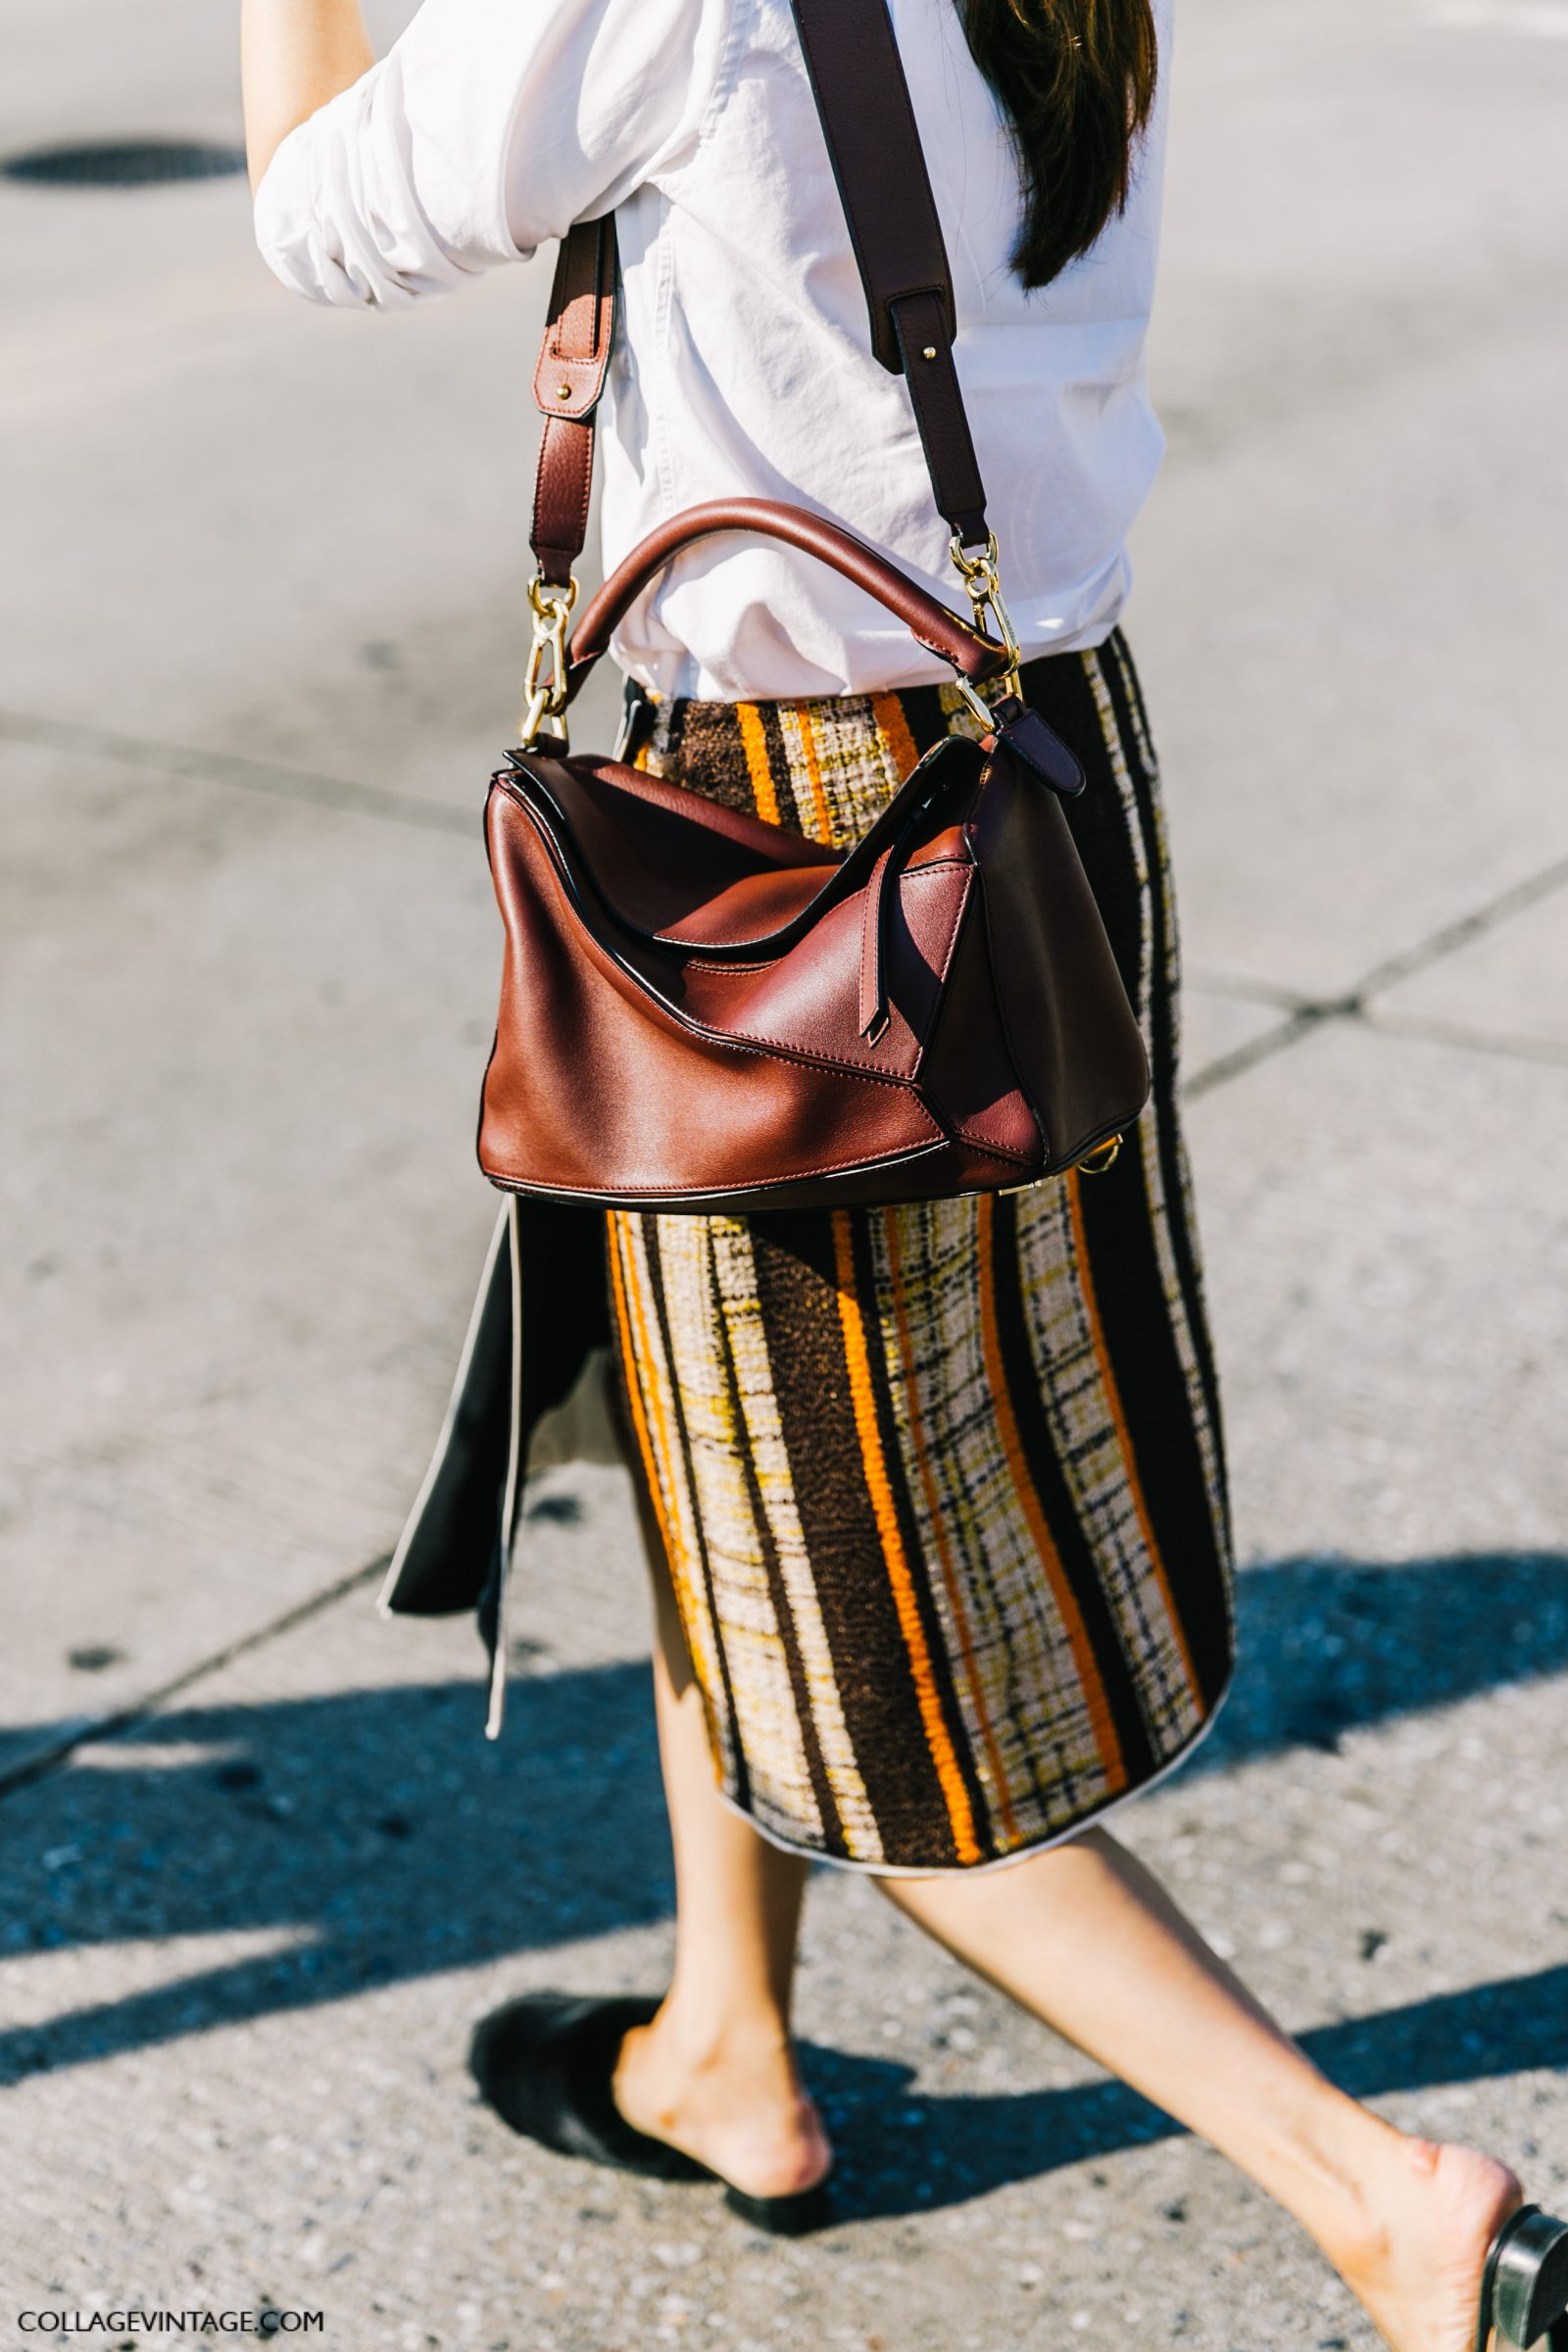 nyfw-new_york_fashion_week_ss17-street_style-outfits-collage_vintage-vintage-mansur_gavriel-rodarte-coach-172